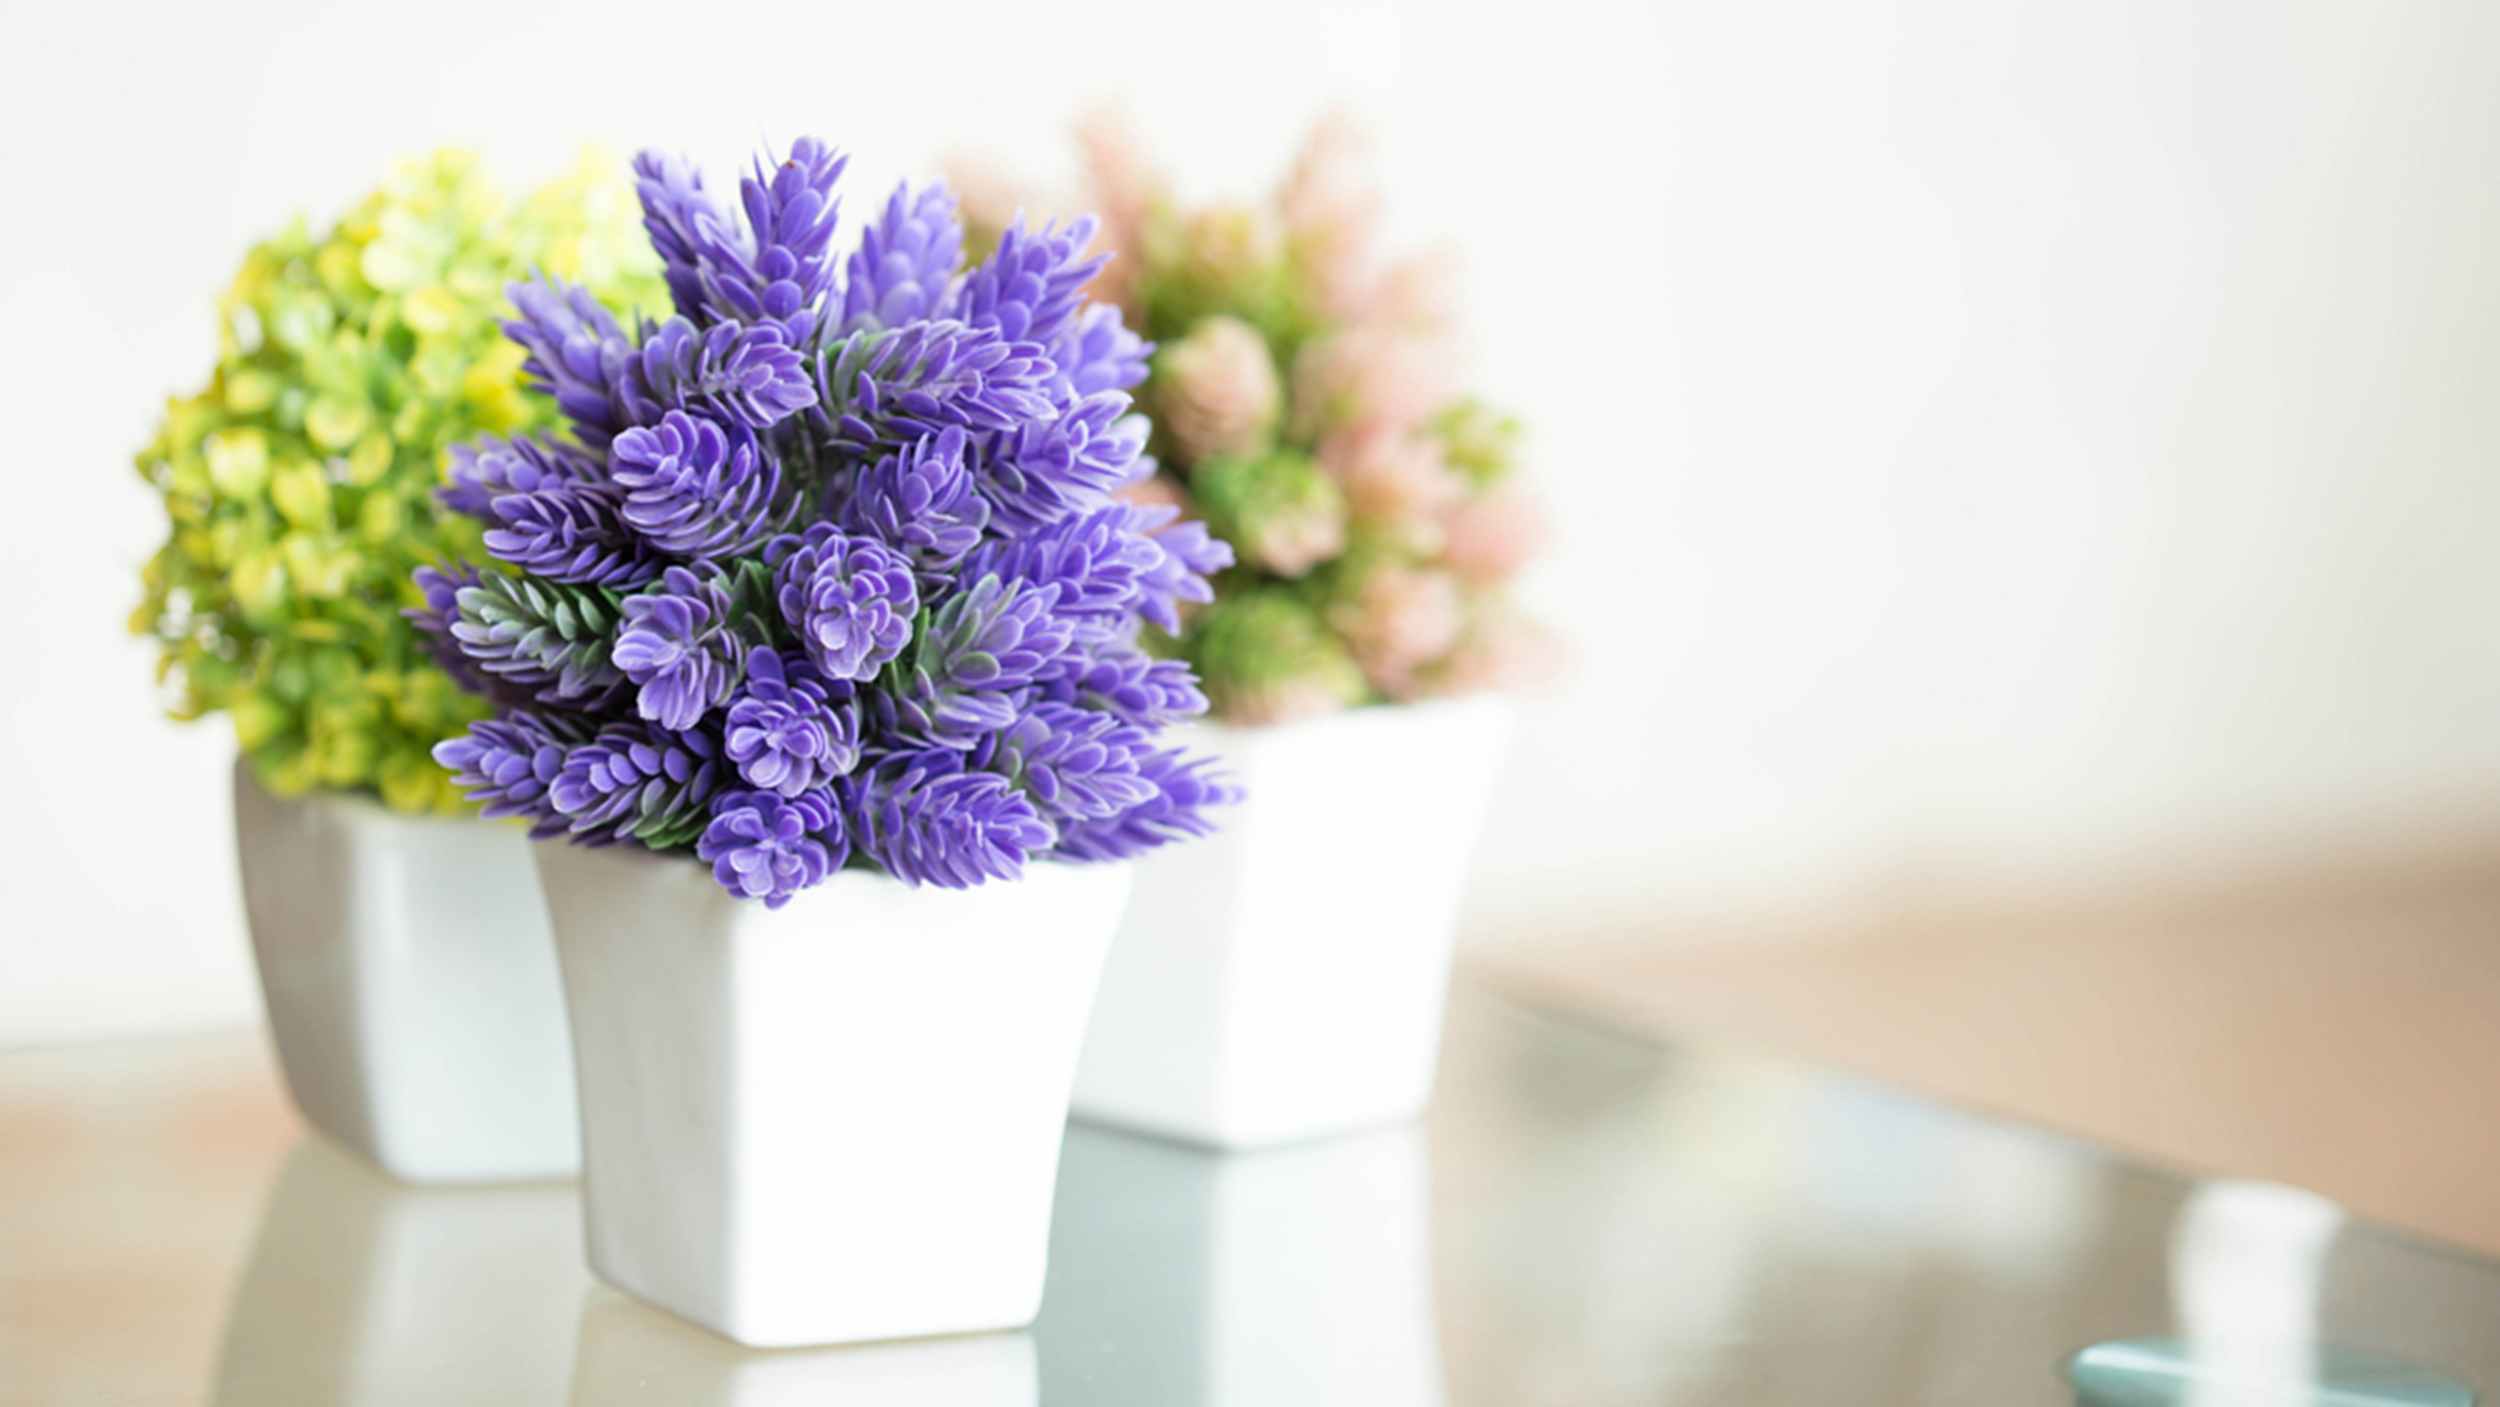 easy indoor flowers - photo #18